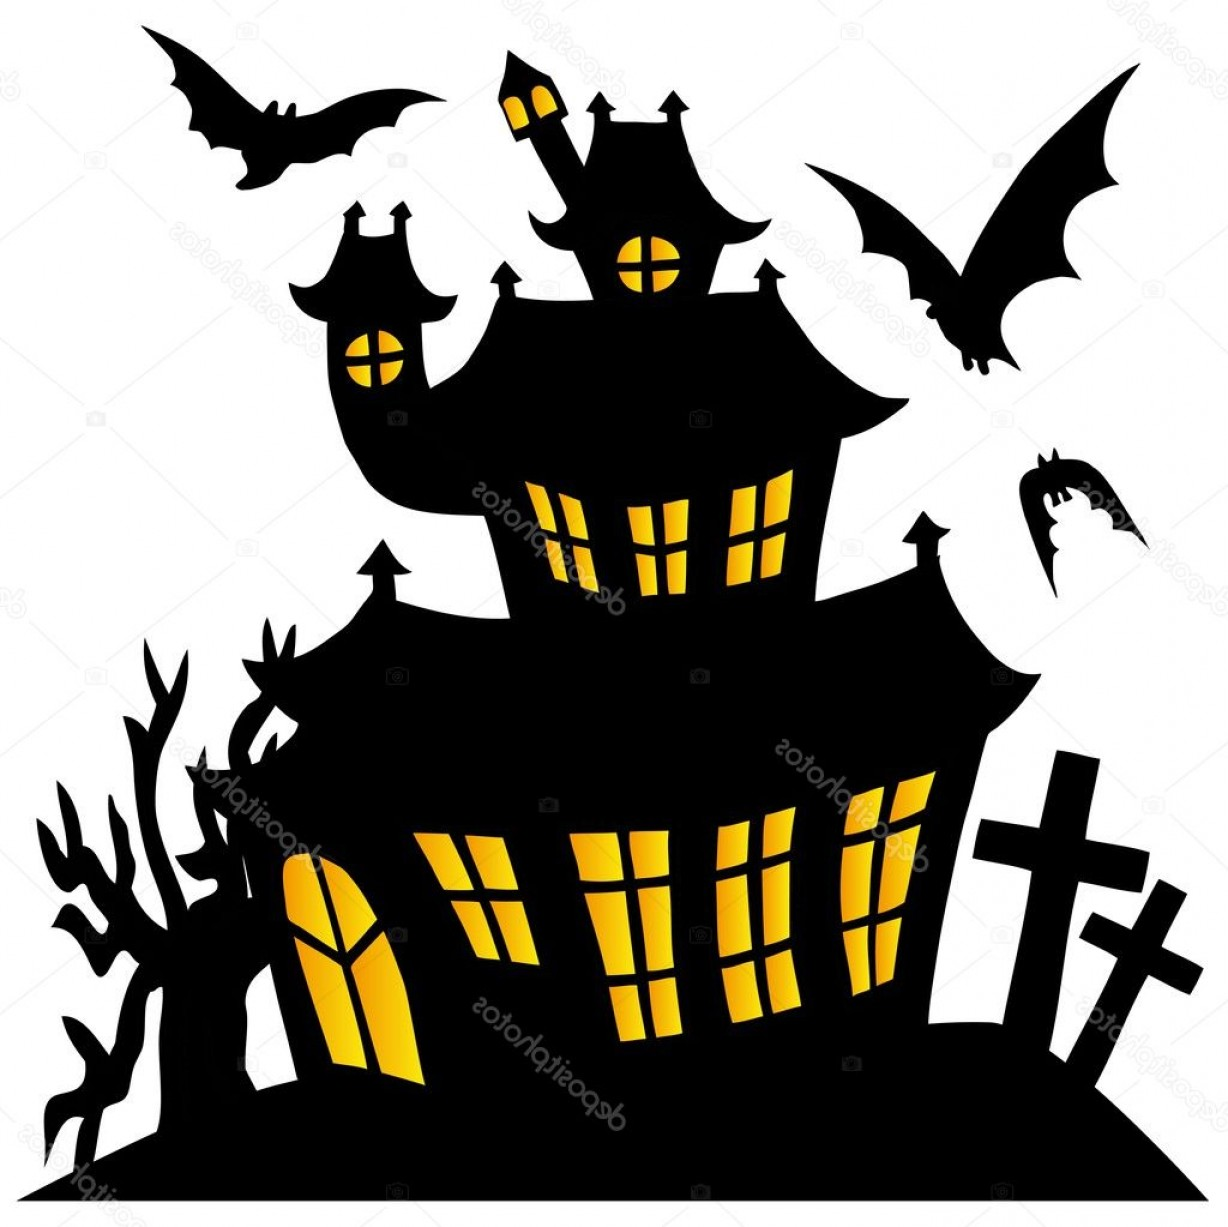 1228x1227 Stock Illustration Silhouette Spooky House Createmepink